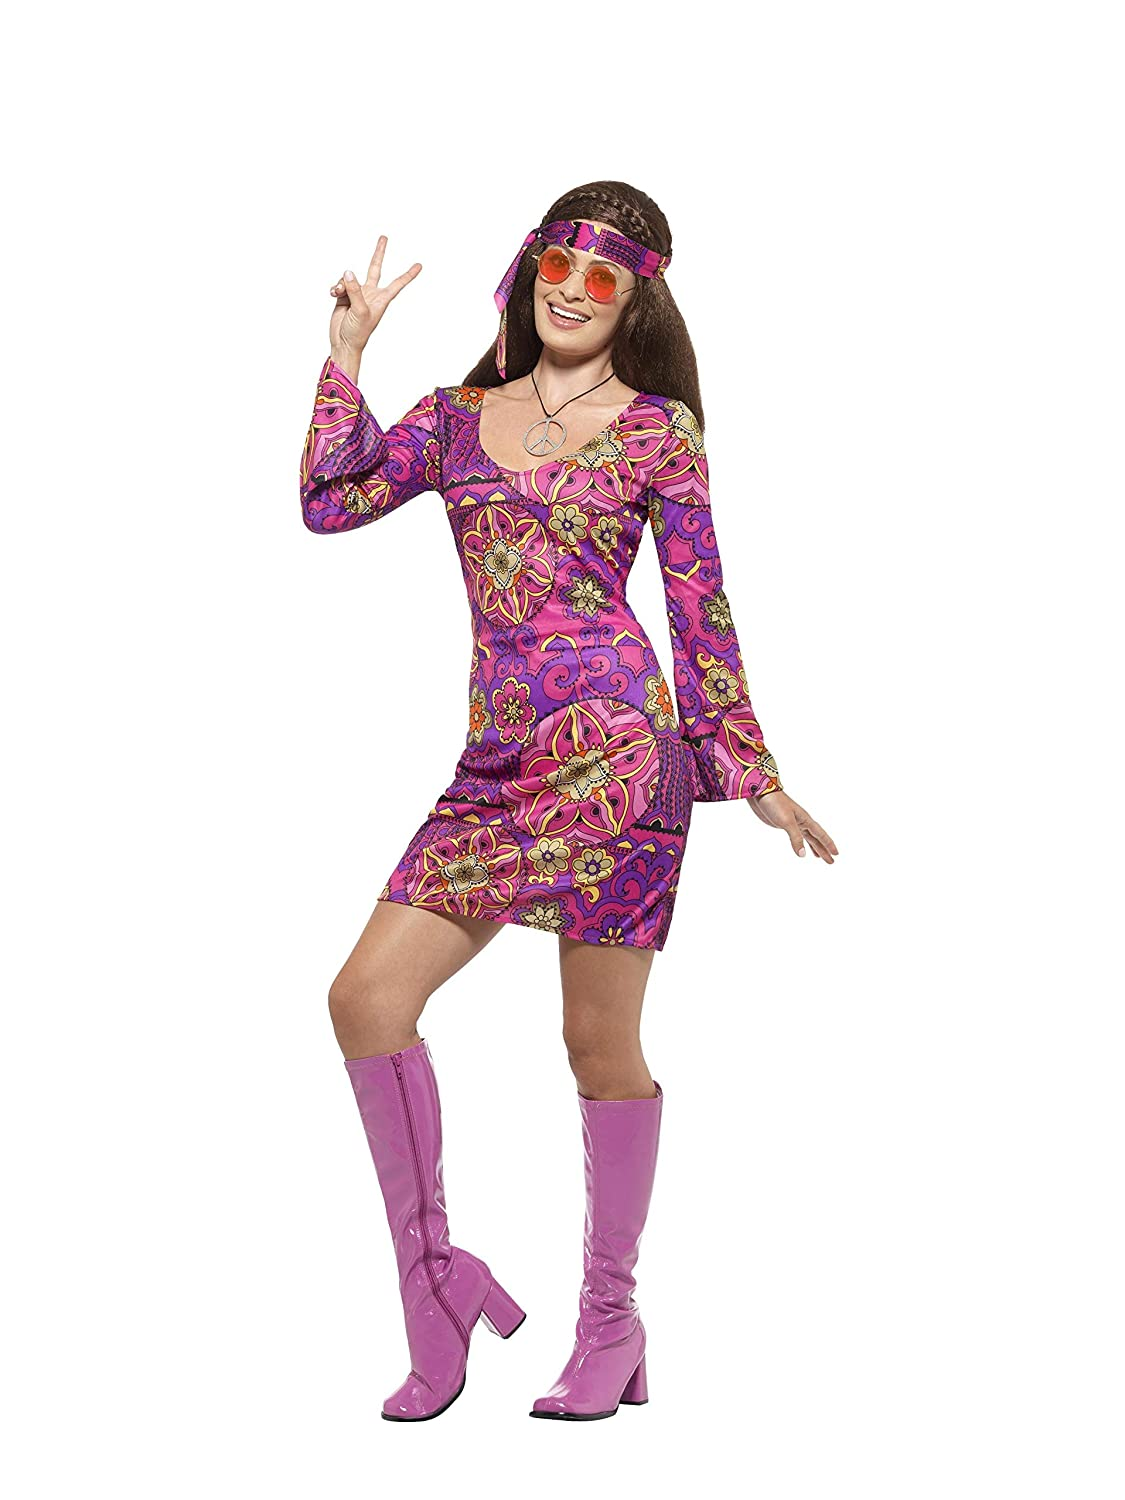 60s Costumes: Hippie, Go Go Dancer, Flower Child, Mod Style Smiffys Hippie Chick Adult Costume Purple $32.00 AT vintagedancer.com